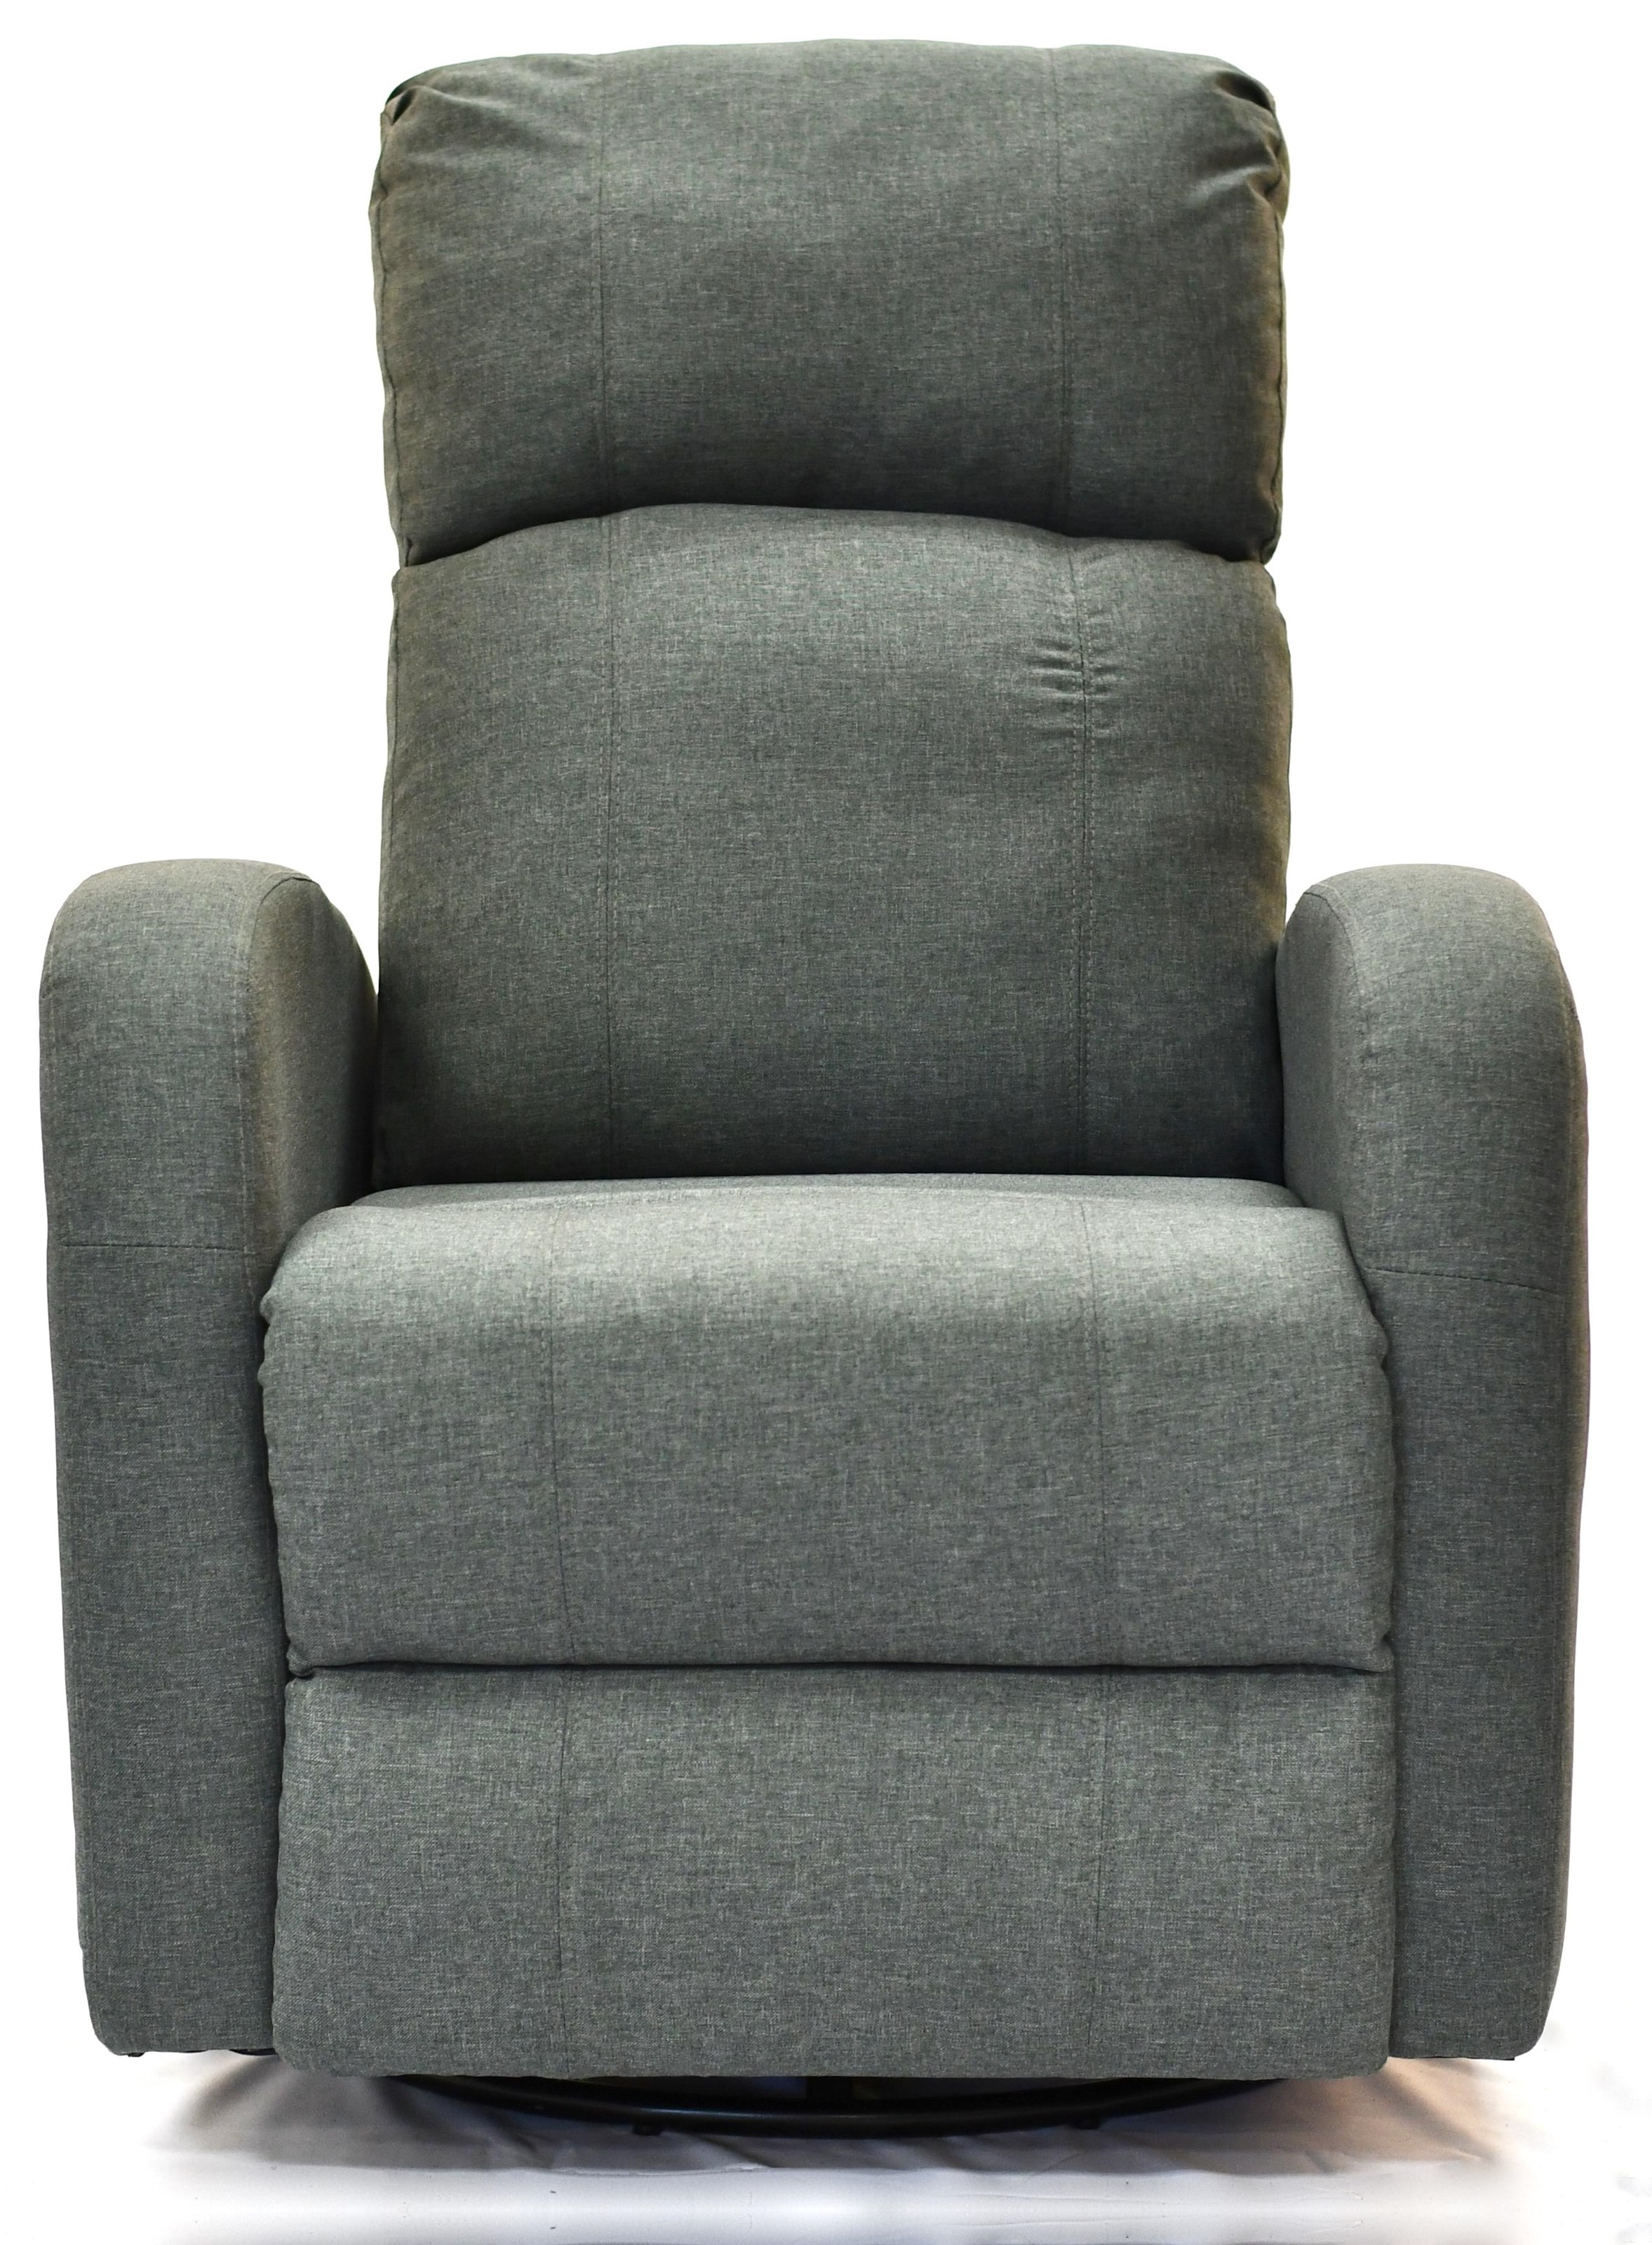 8118 Swivel Glider Recliner at Bennett's Furniture and Mattresses